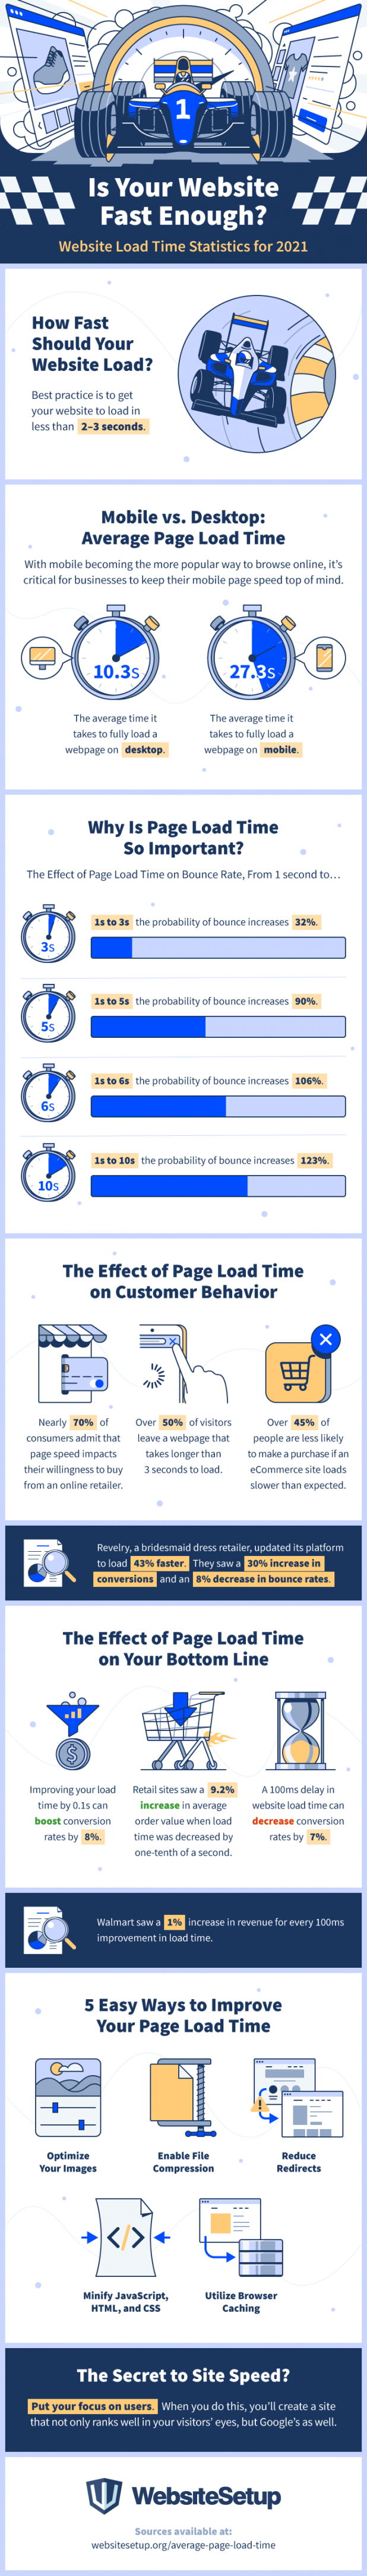 Website Speed: 5 Tips on How to Improve Your Load Time [Infographic]